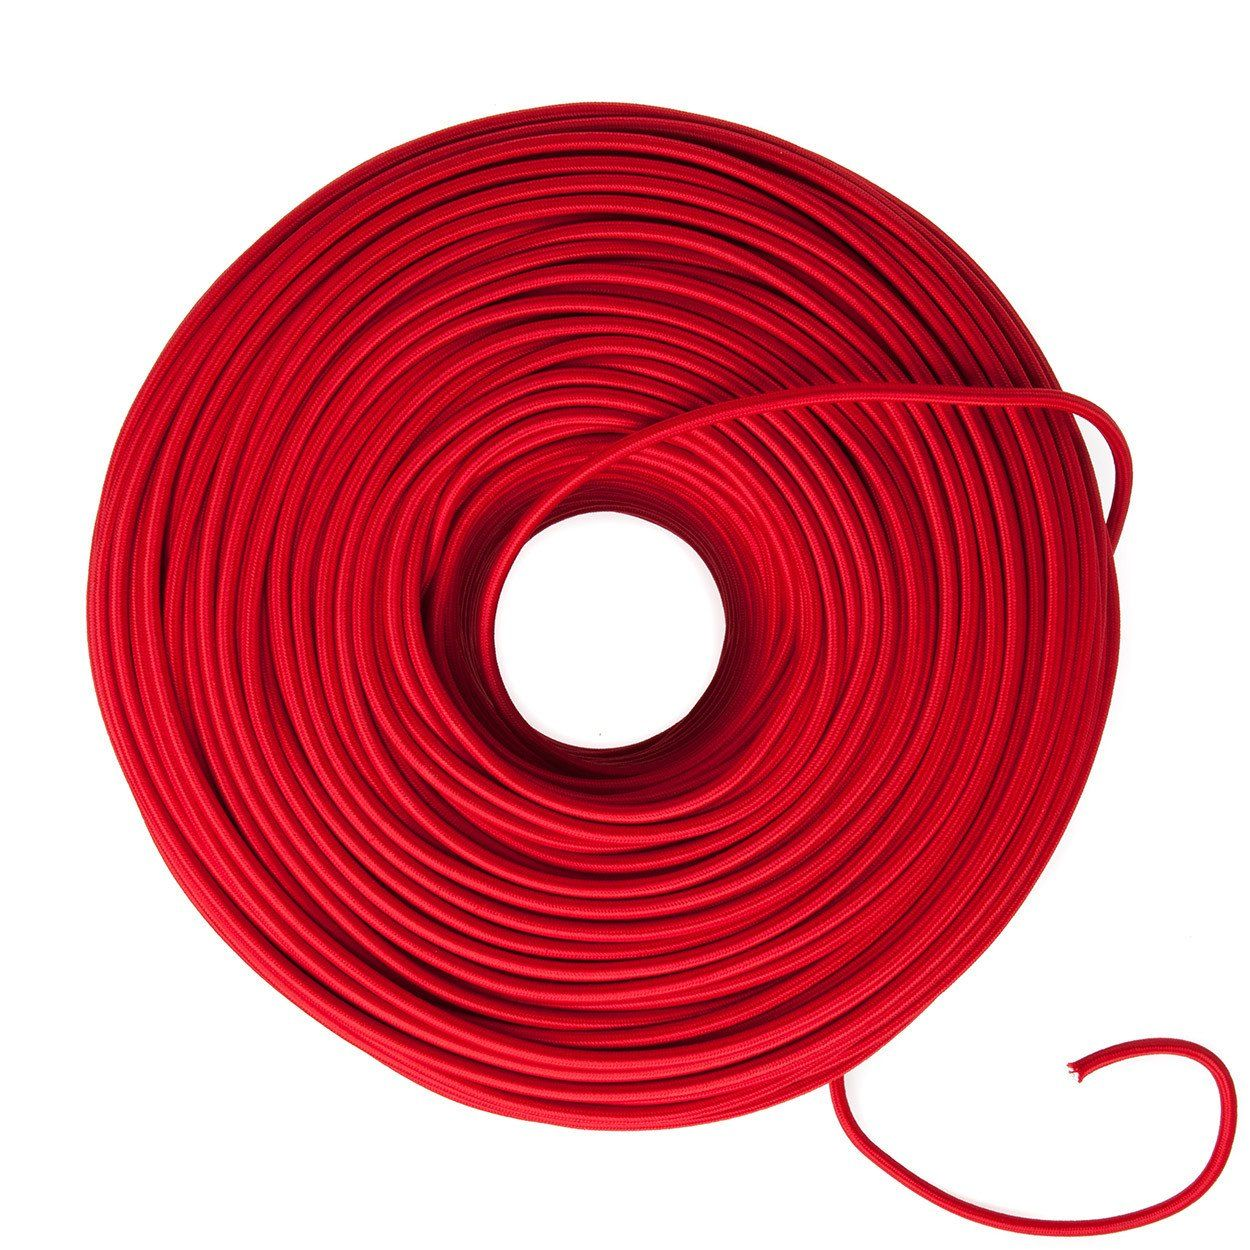 Co color cardinal red - Diy Fabric Wire By The Foot Cardinal